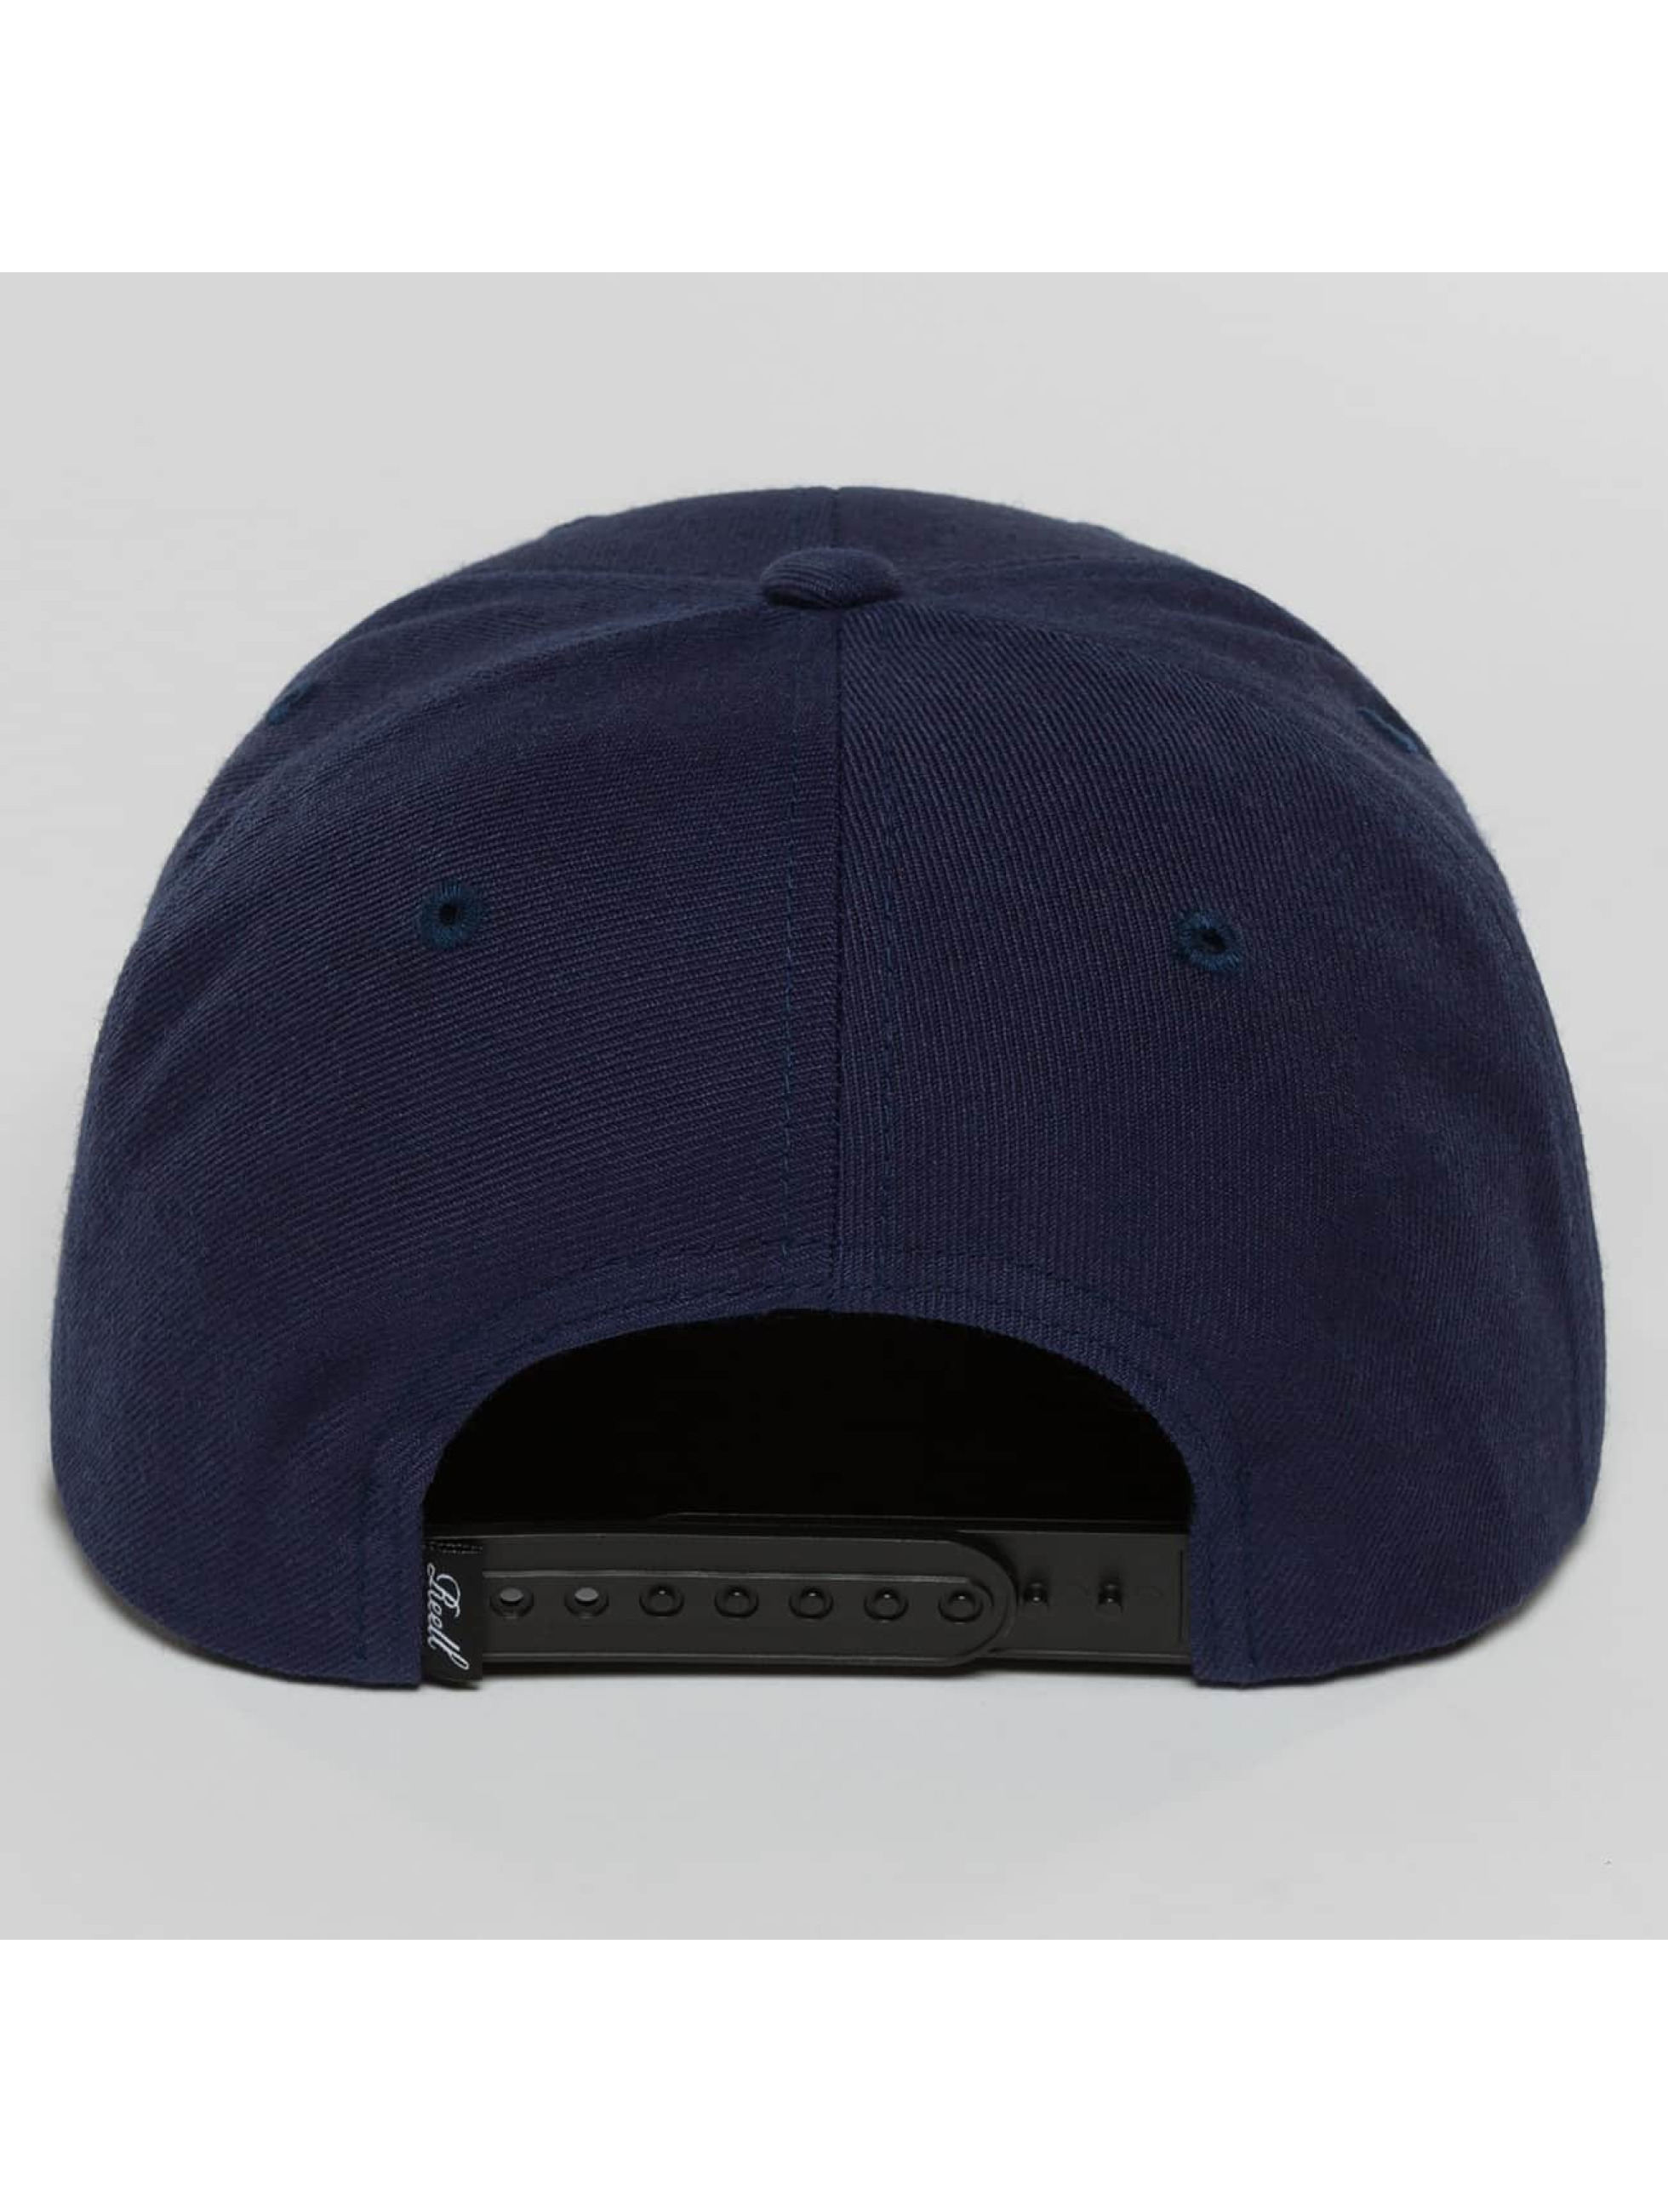 Reell Jeans Casquette Snapback & Strapback 1402004050431 bleu